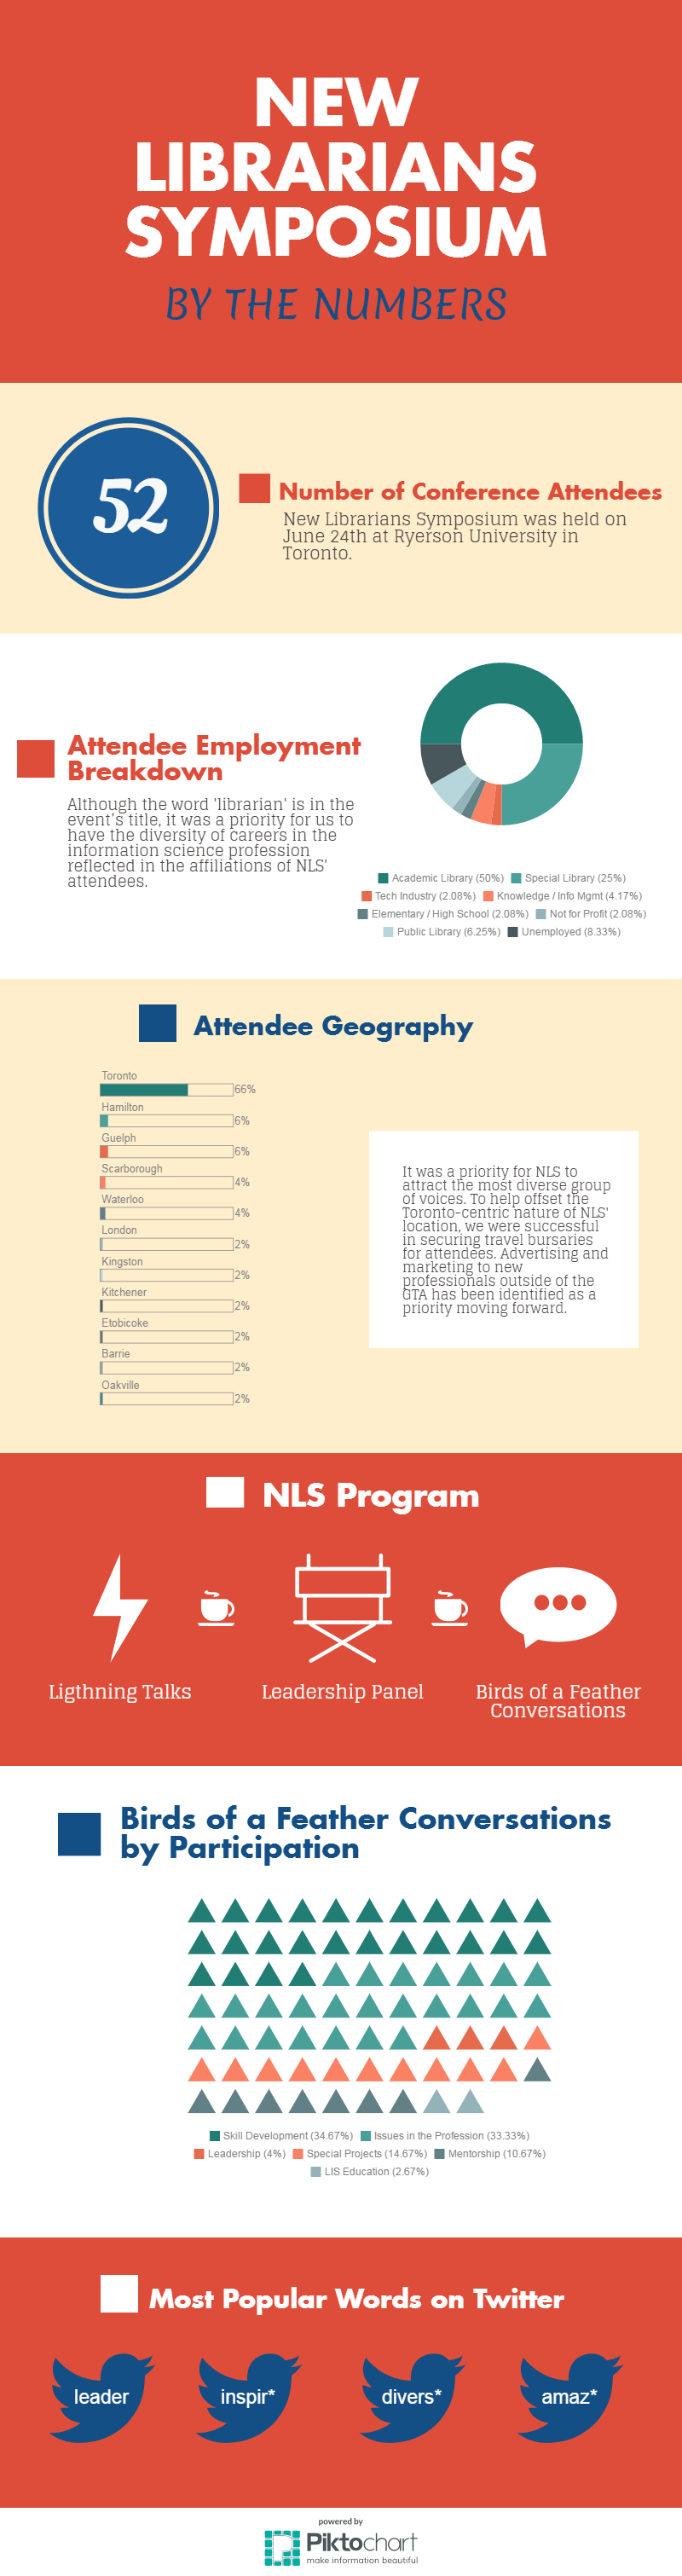 2-nls-by-the-numbers